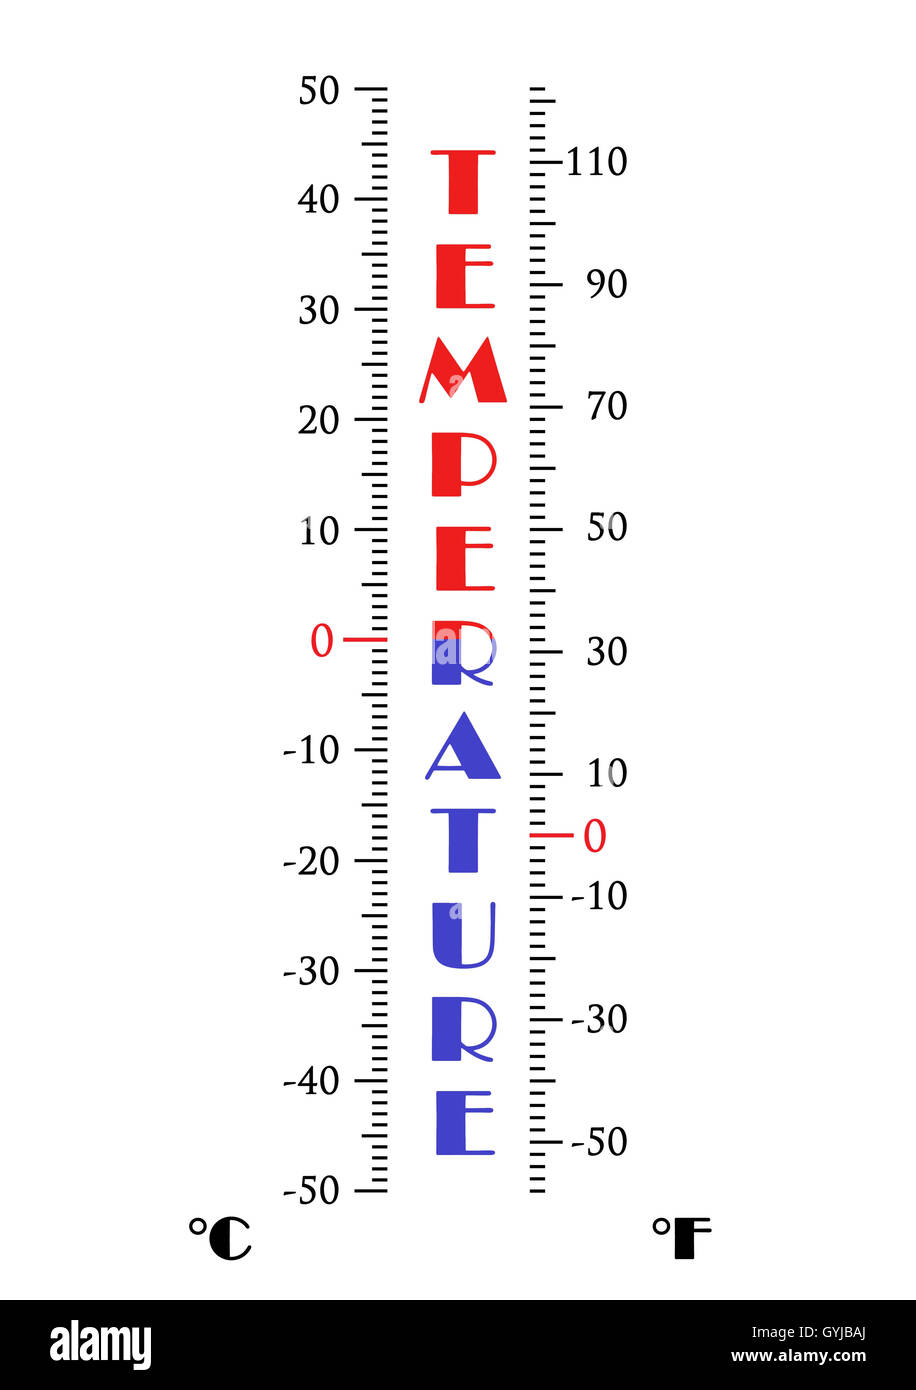 Temperature scale - Stock Image